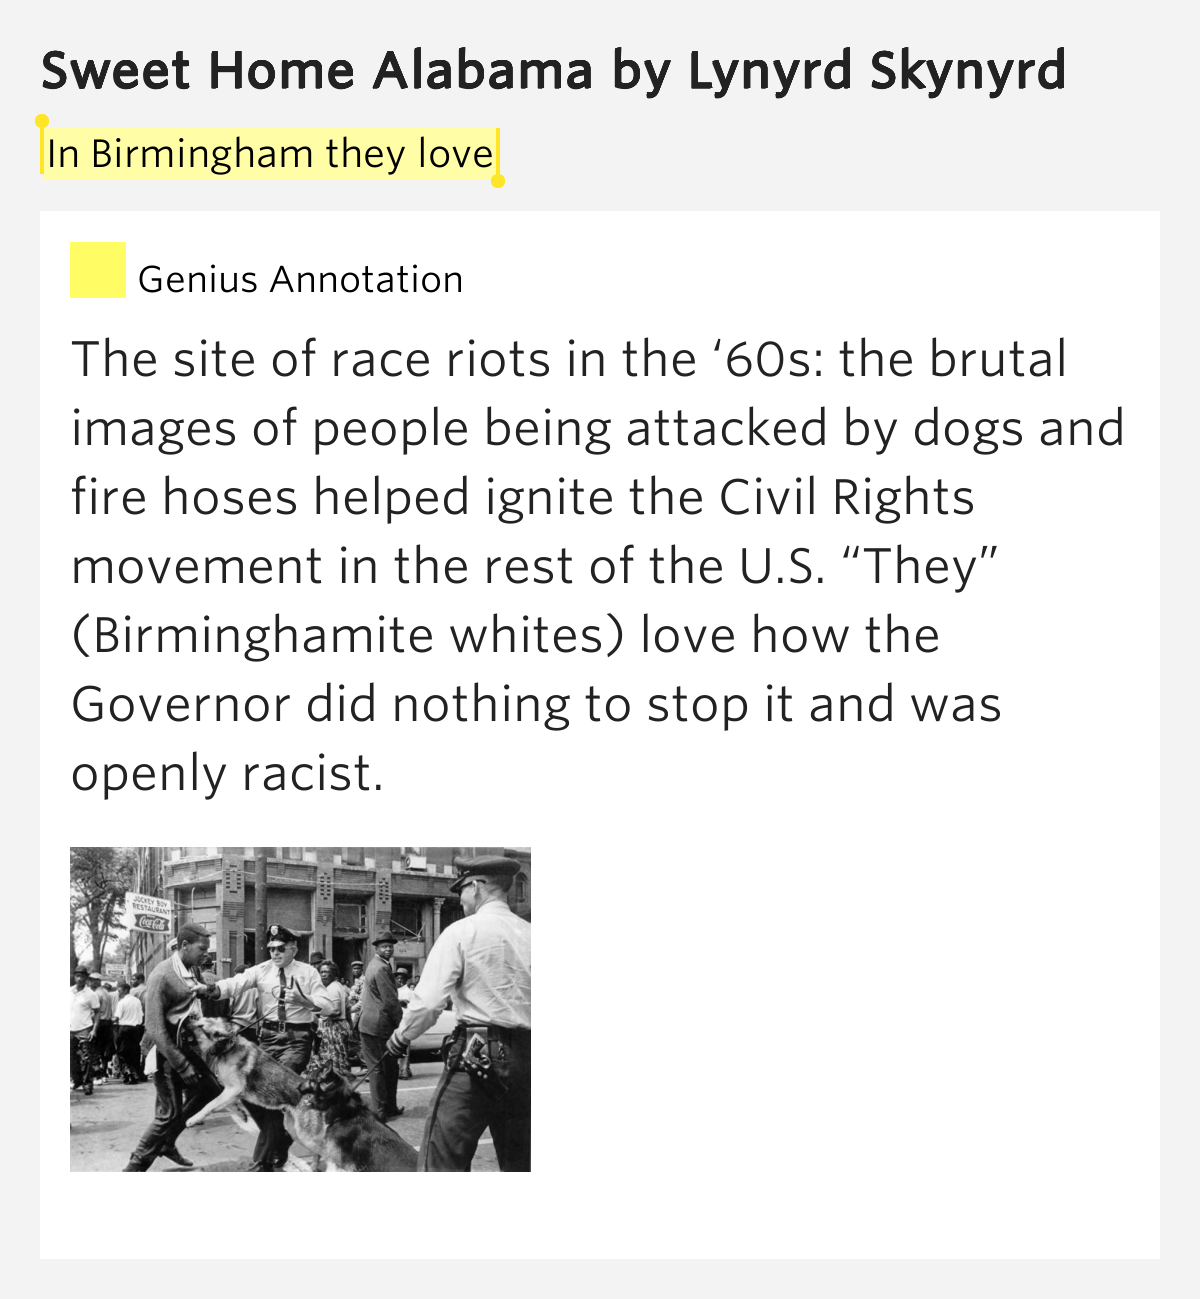 In Birmingham They Love Sweet Home Alabama Lyrics Meaning